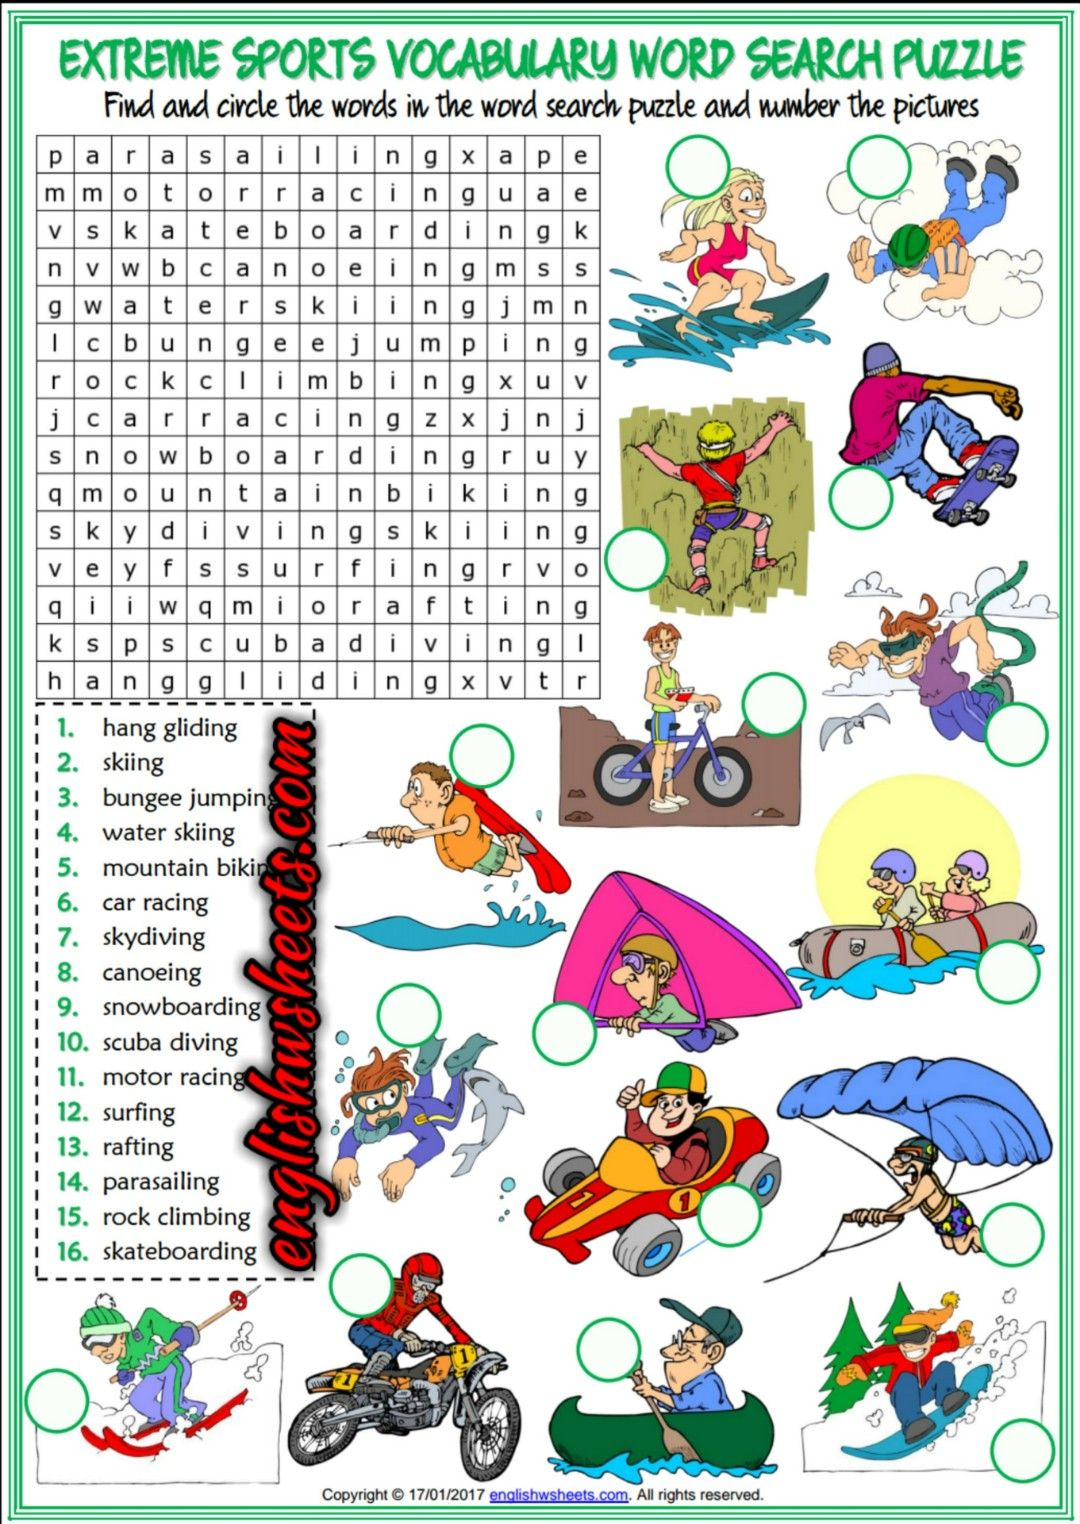 Adding Vectors Worksheet Pdf Extreme Sports Esl Printable Word Search Puzzle Worksheet For Kids  Compare Whole Numbers Worksheet with Space Worksheets Ks2 Extreme Sports Esl Printable Word Search Puzzle Worksheet For Kids 4th Class Maths Worksheets